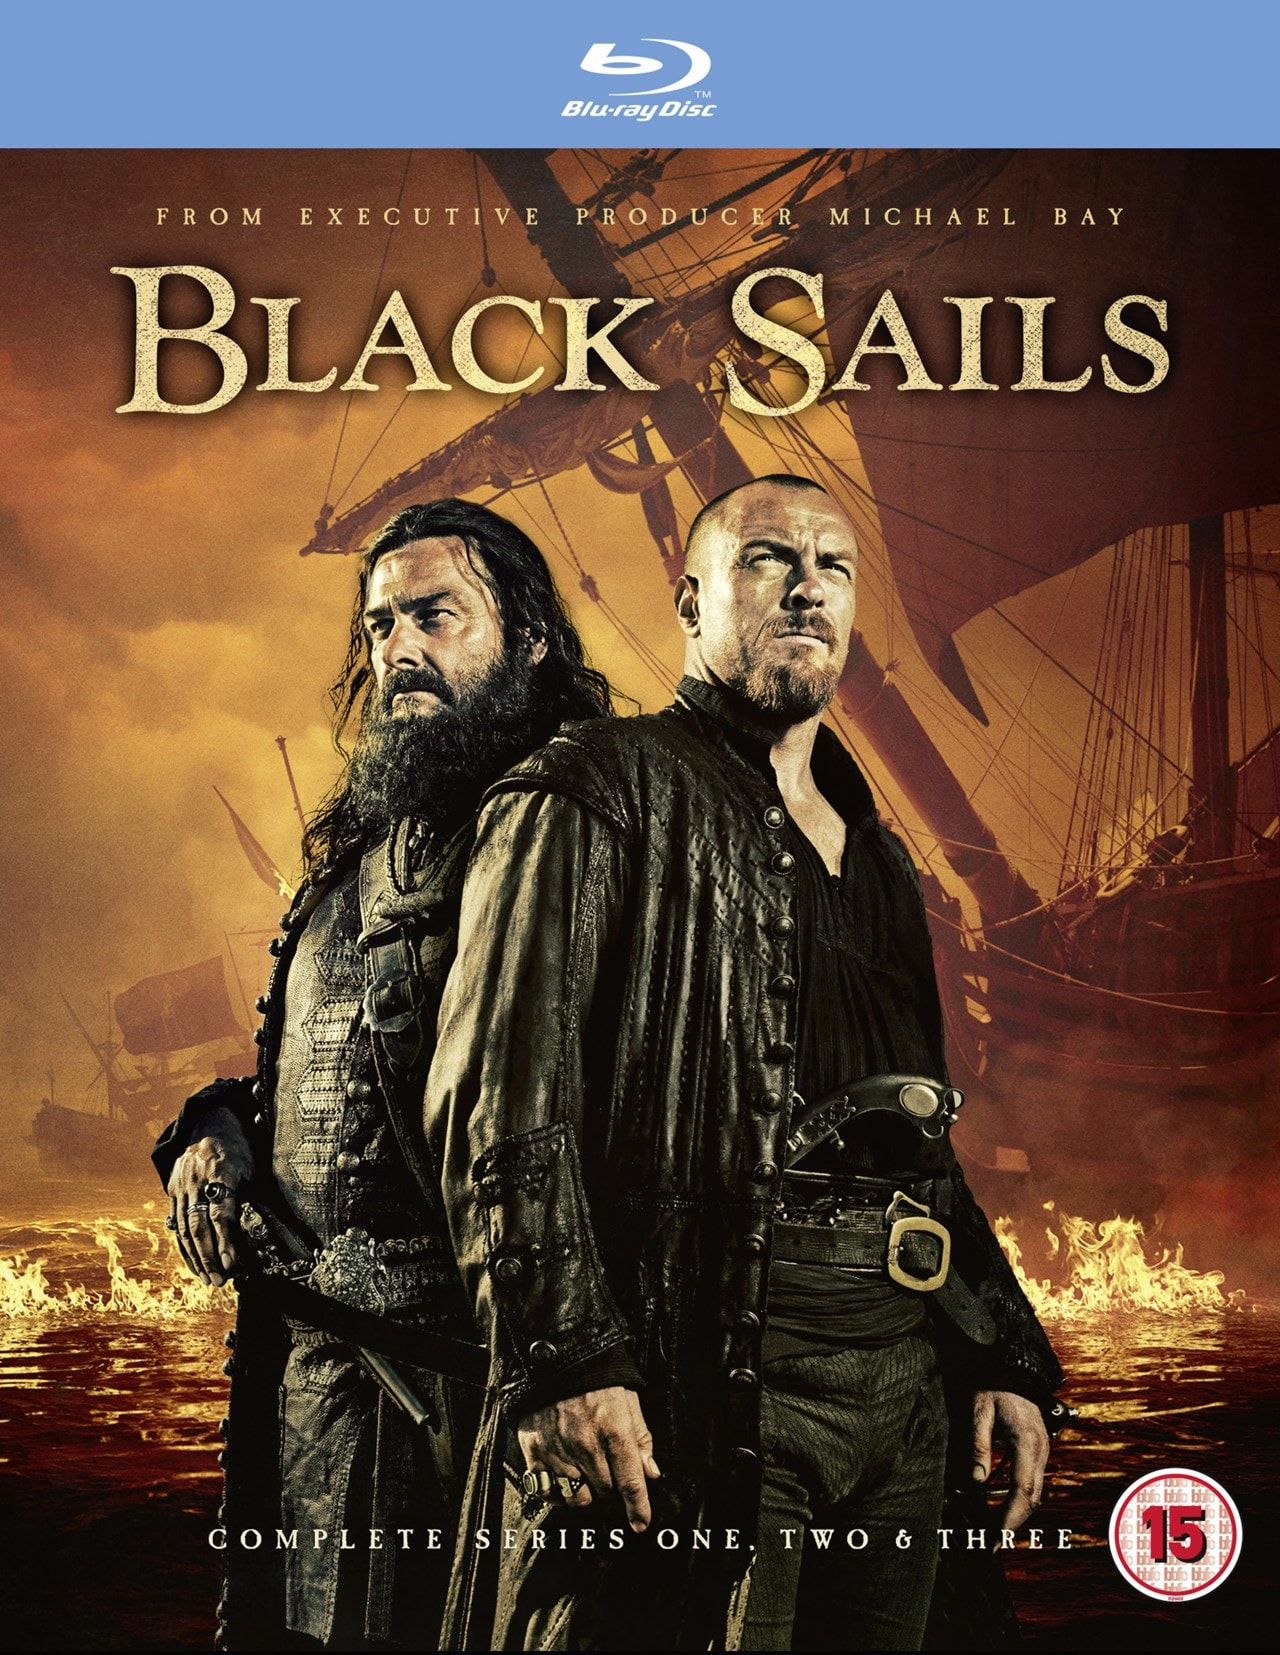 Black Sails: Complete Series One, Two & Three - 1